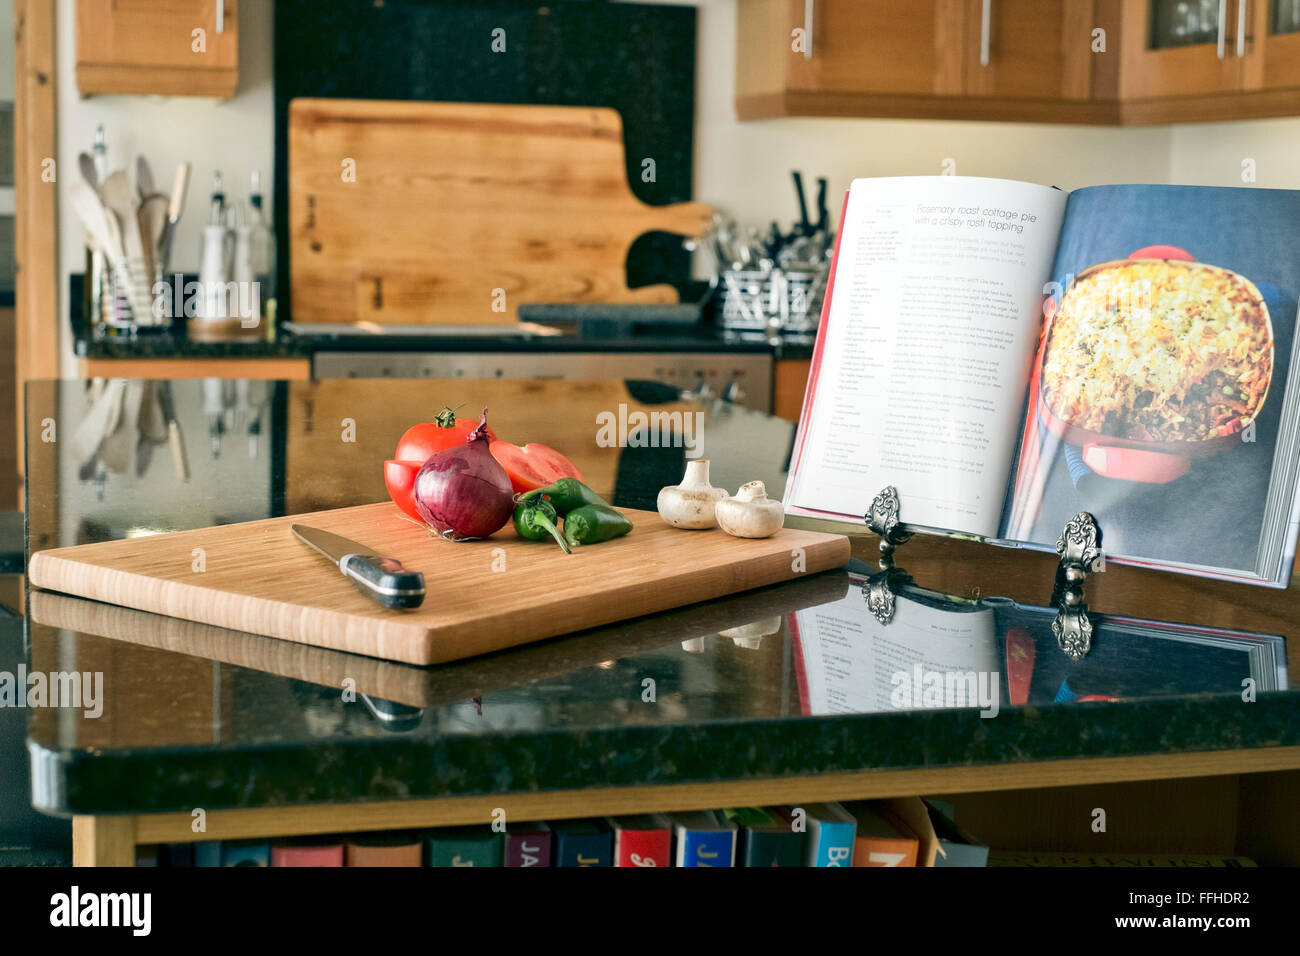 Preparation of food in a domestic kitchen using a chopping board, knife and recipe book - Stock Image